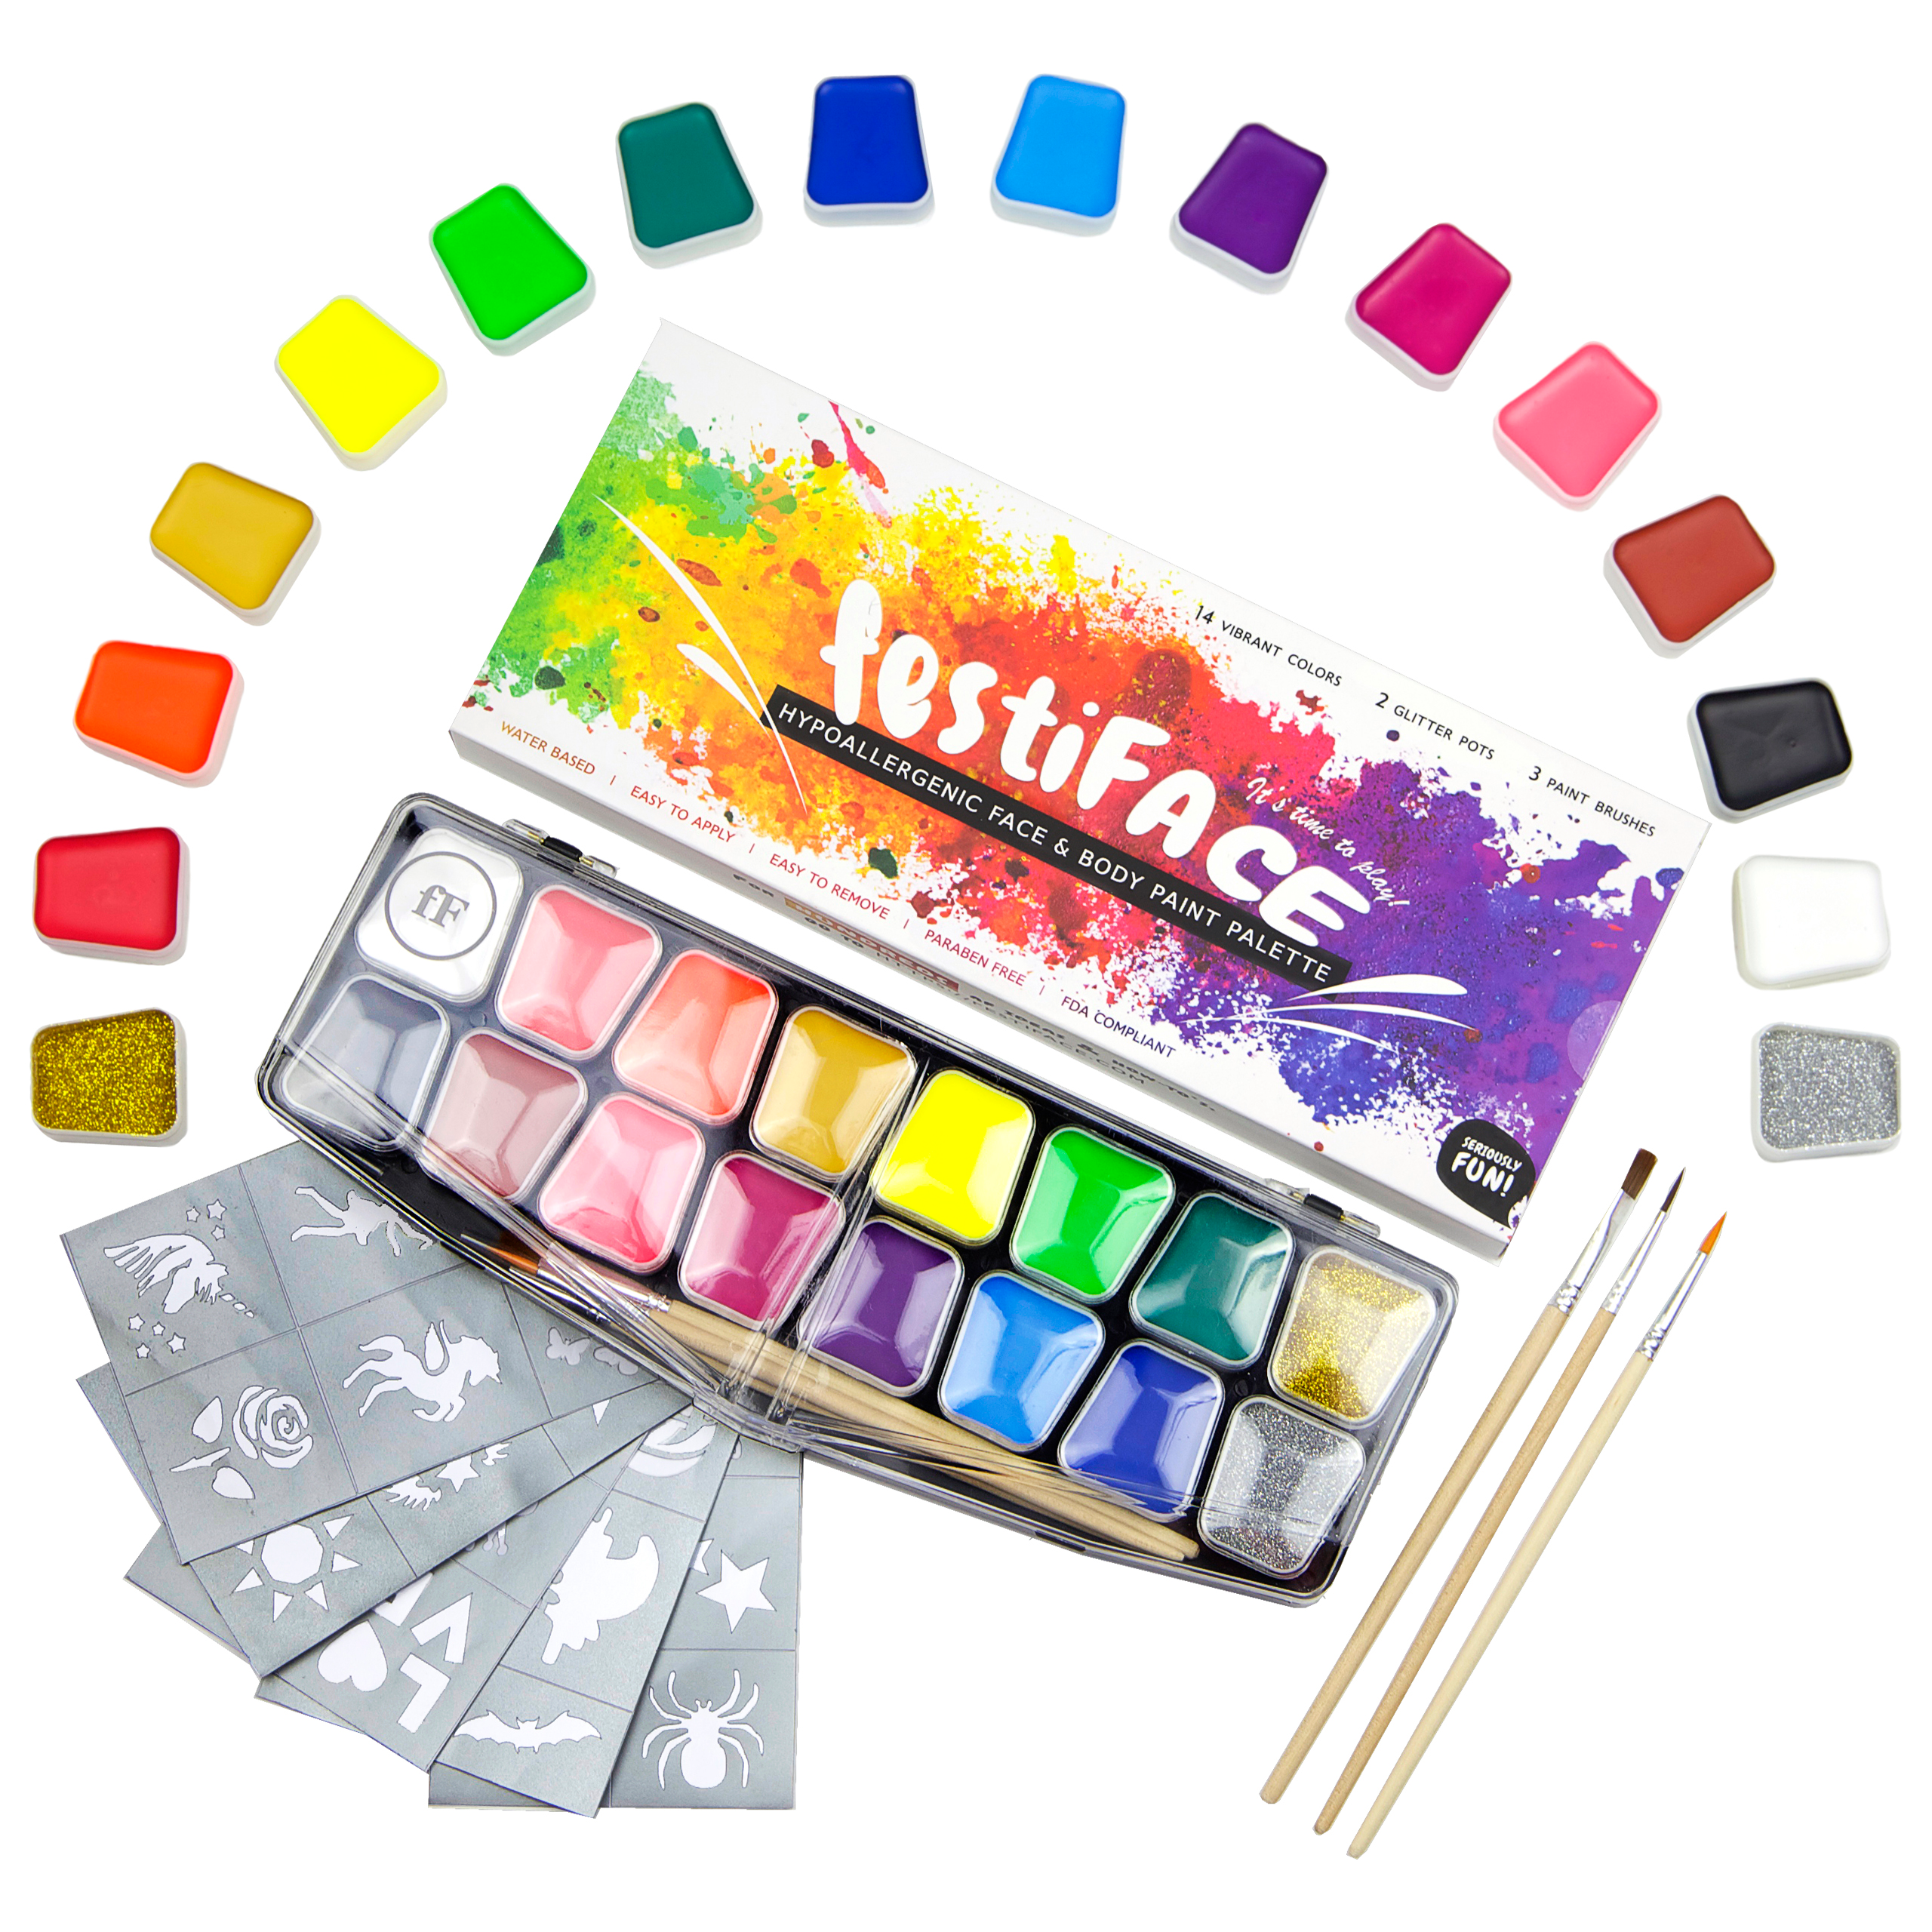 KIDS NON TOXIC WATERCOLOUR PALETTE Art Craft Childrens Painting Set Paint Palete